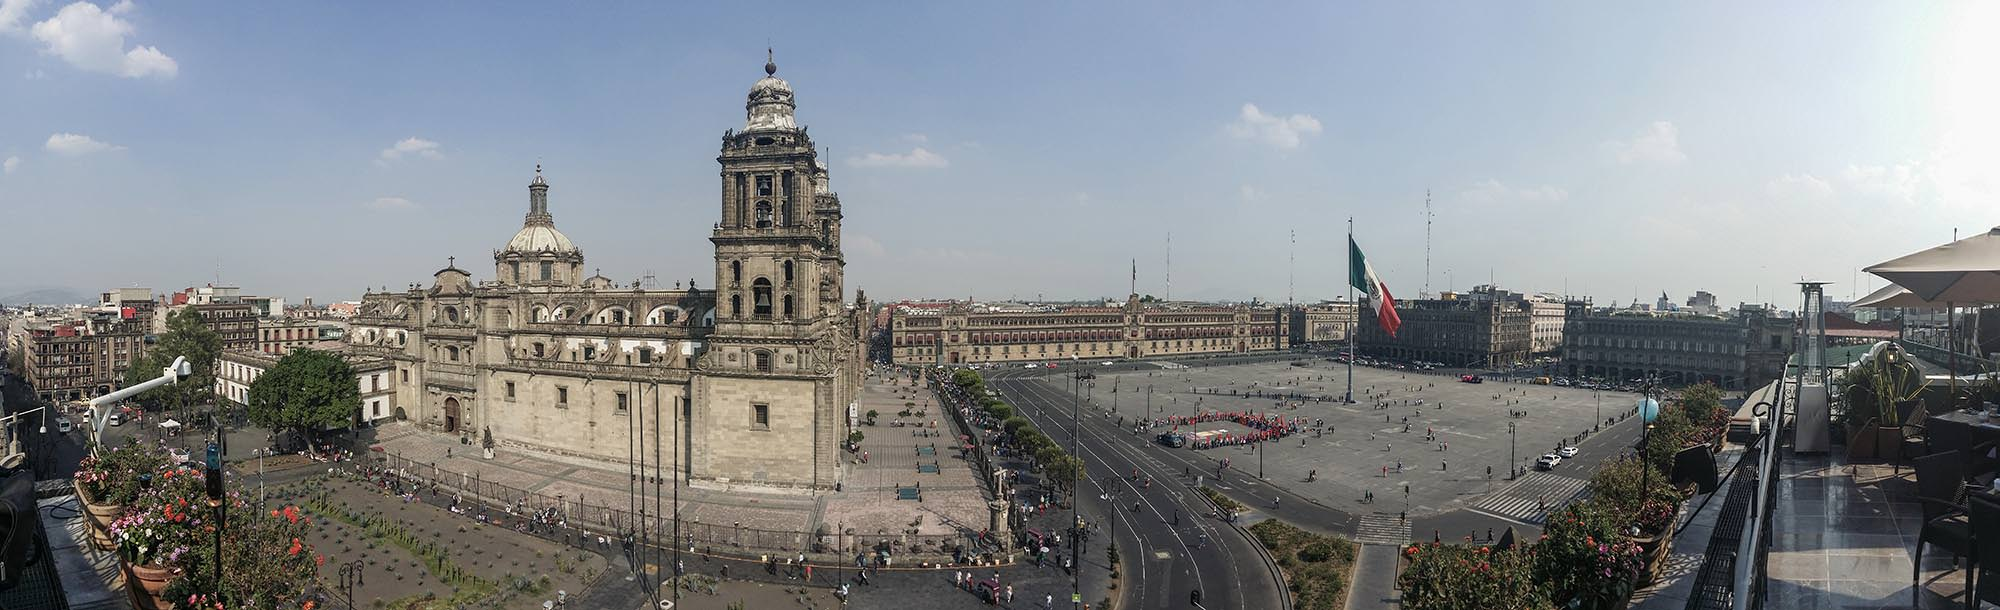 Zócalo and cathedral from above.